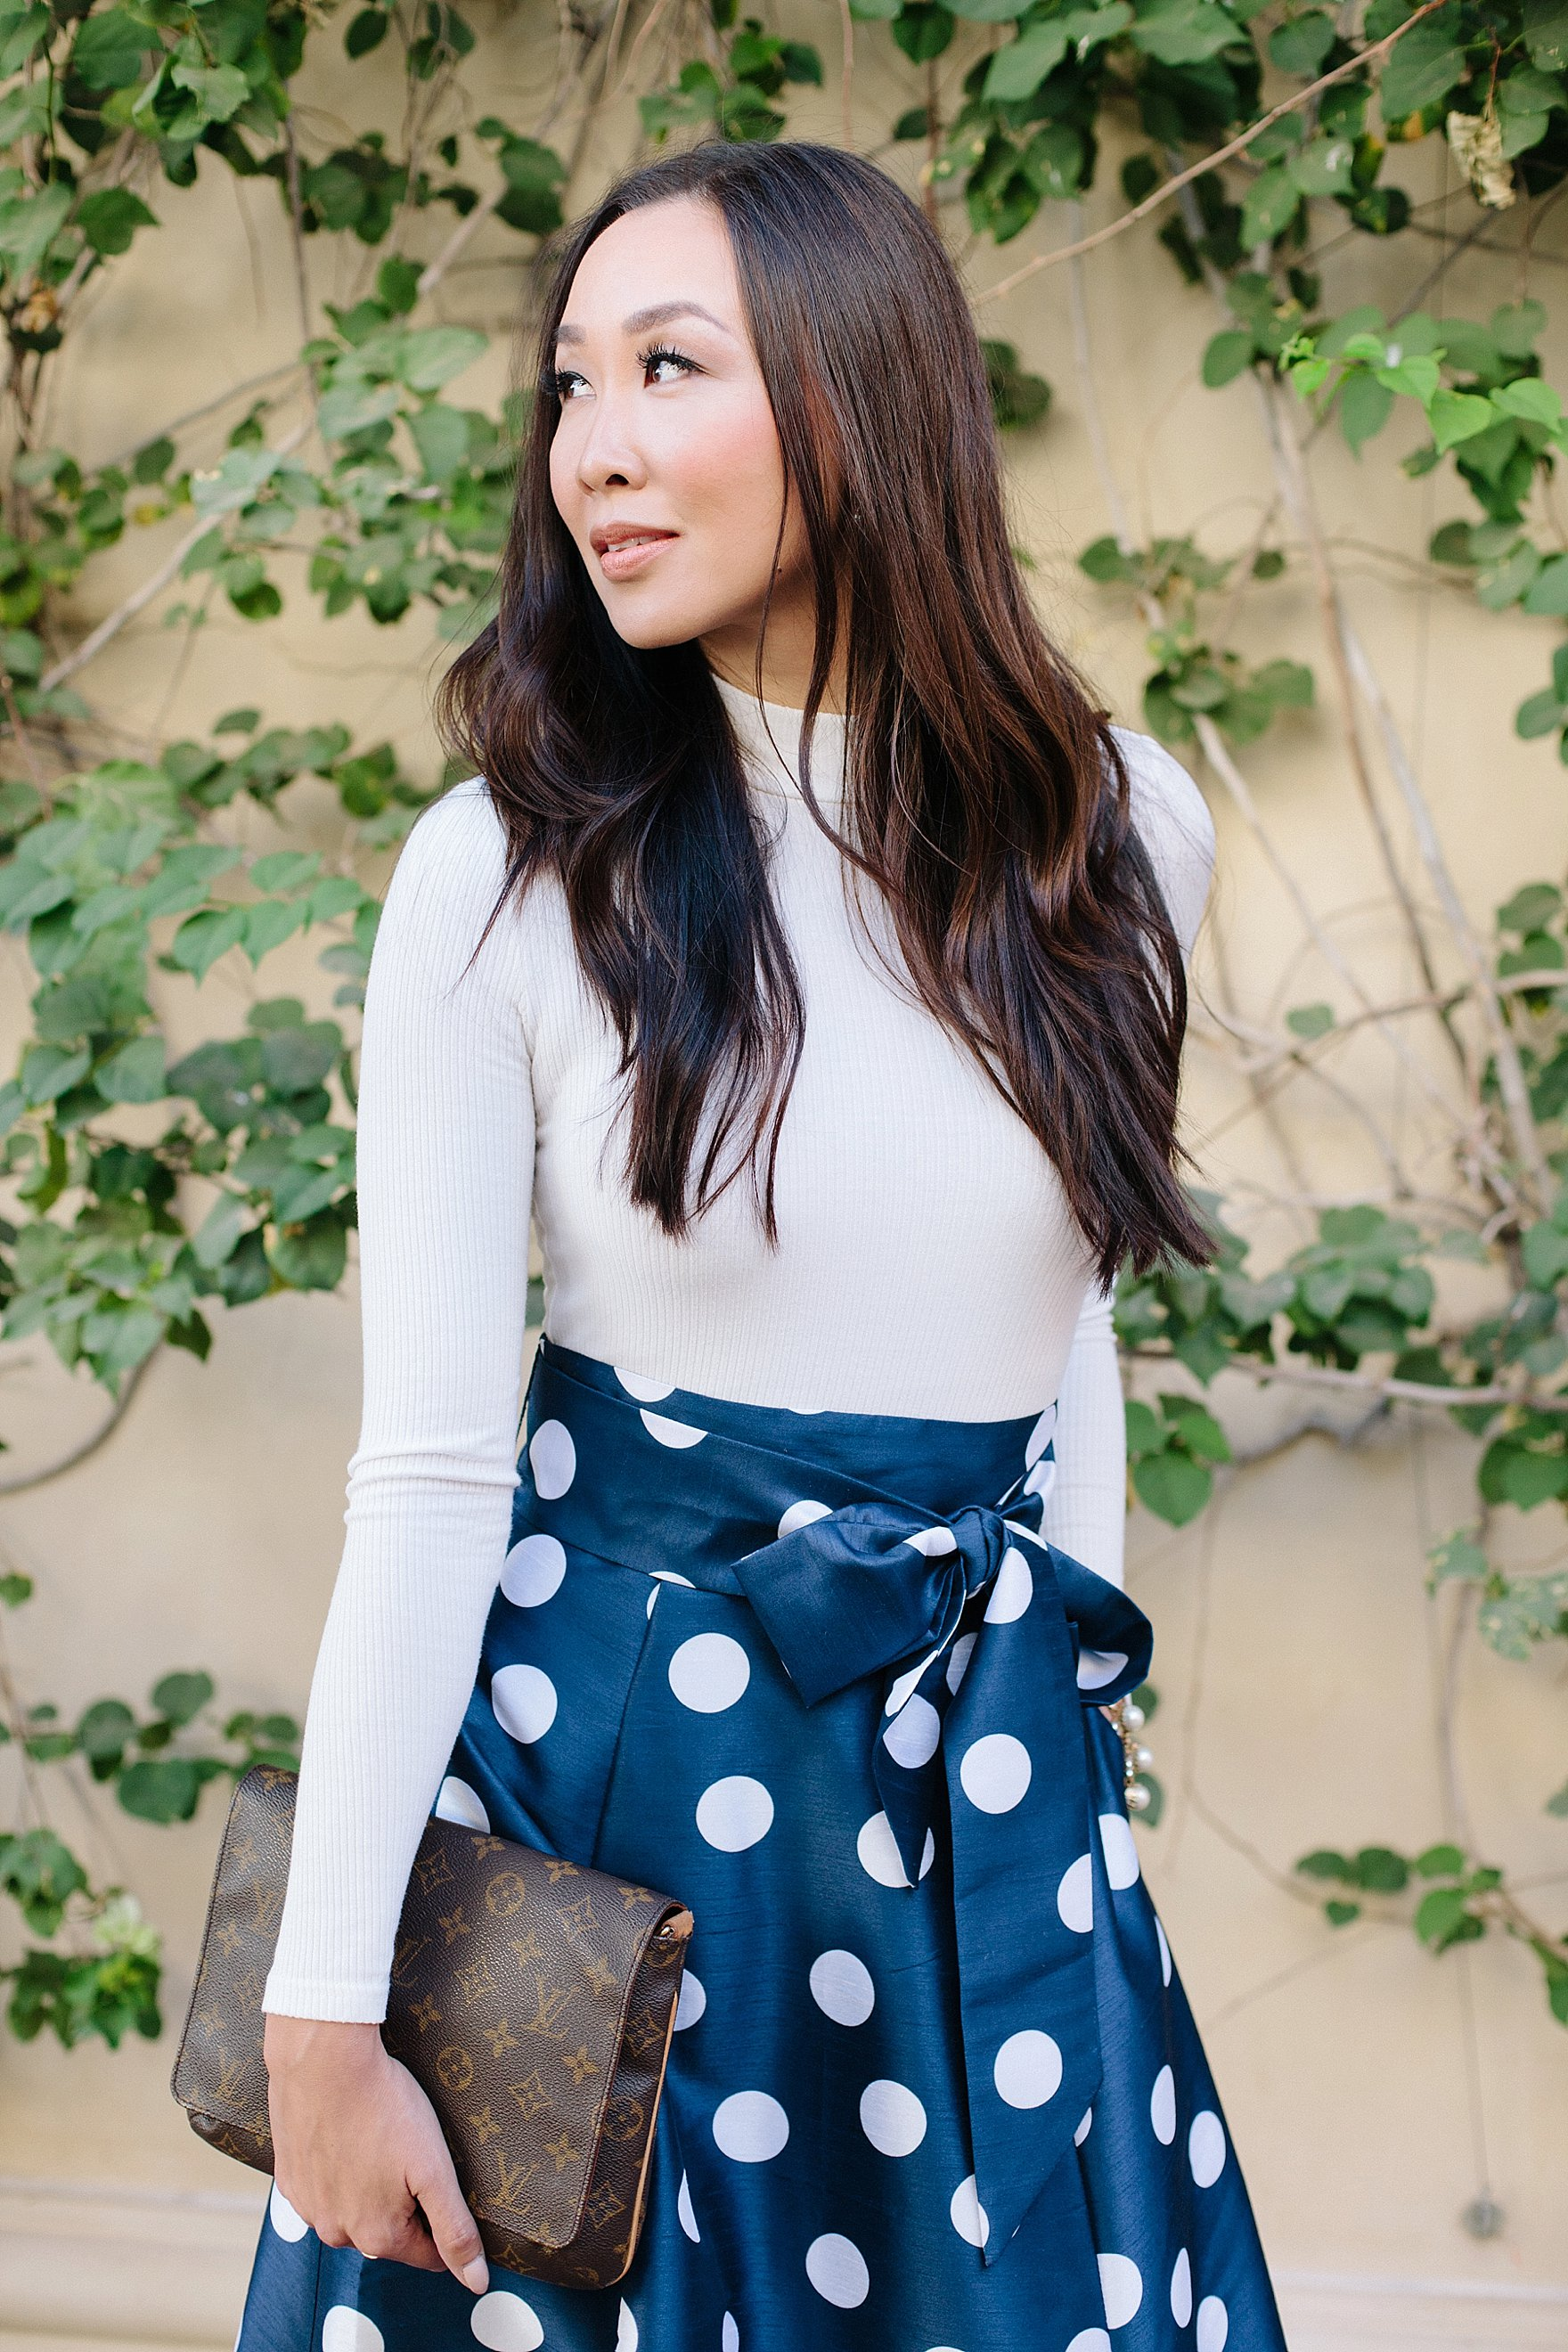 blue and white polka dot long skirt custom by eShakti with pockets! Great holiday dress outfit look on blogger Diana Elizabeth